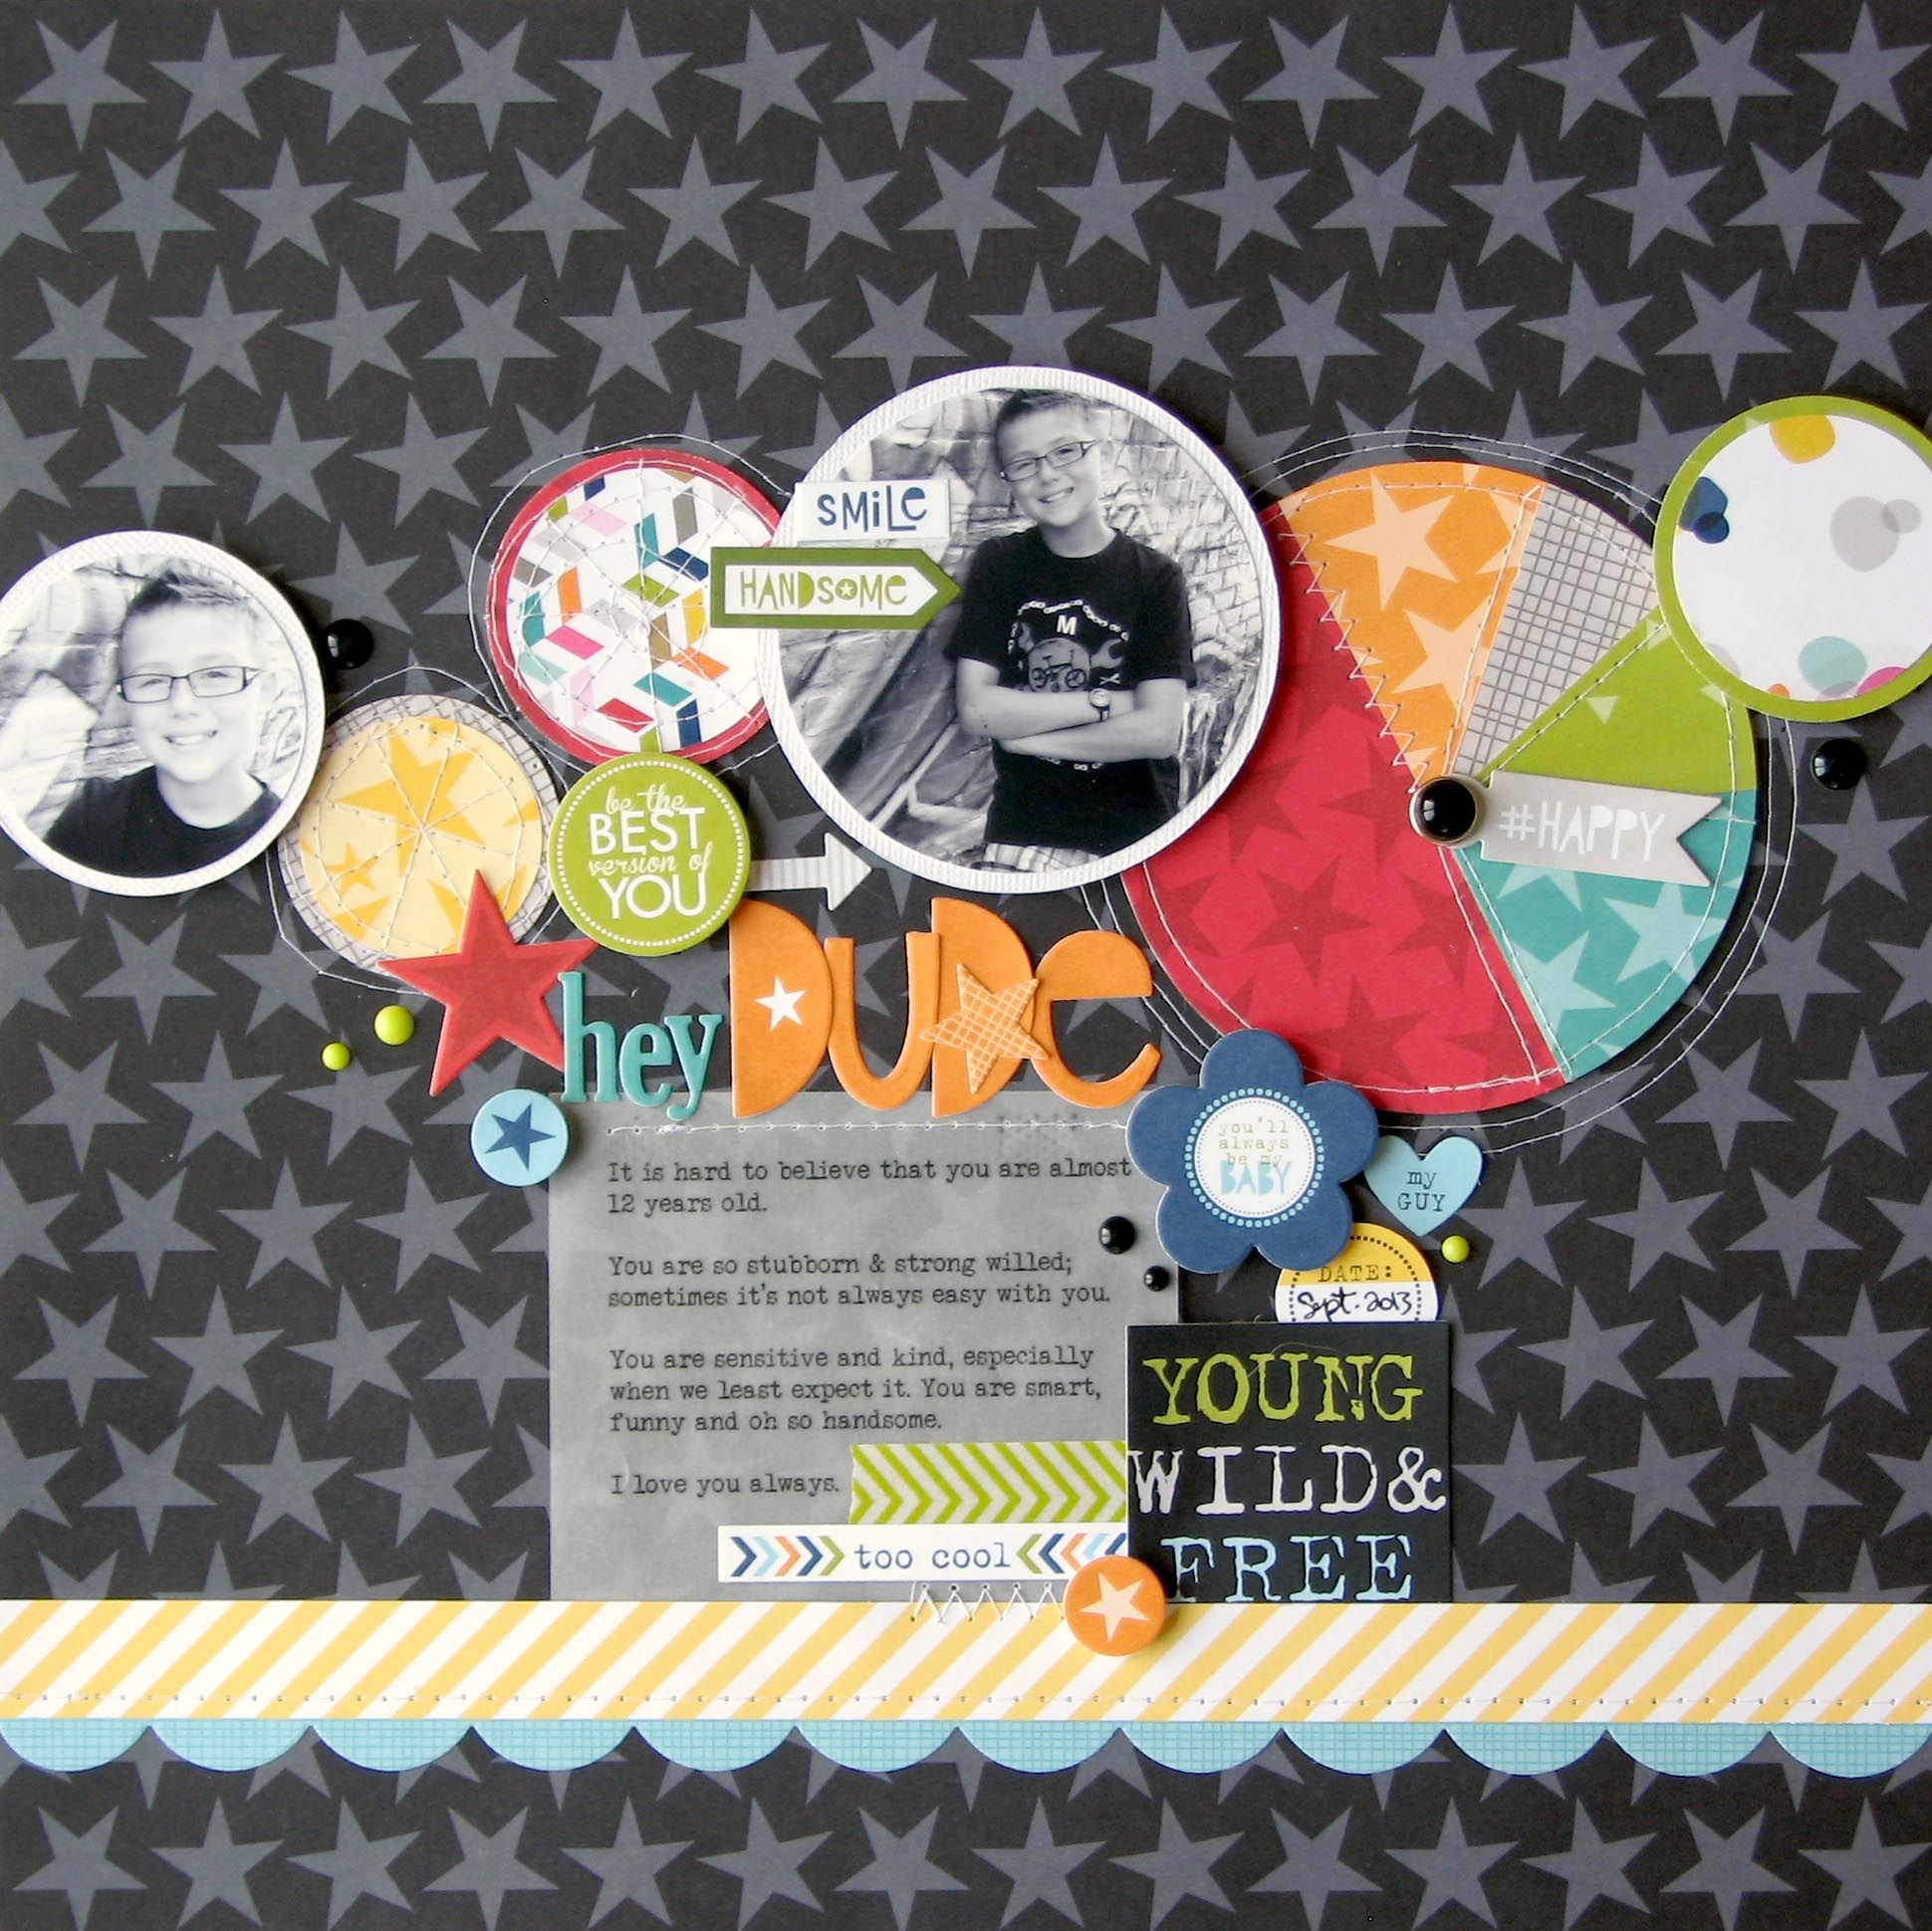 Scrapbook ideas black background - Hey Dude Bella Blvd By Justnick At The Color Just Jumps Off Of That Black Background So Much Happy Energy